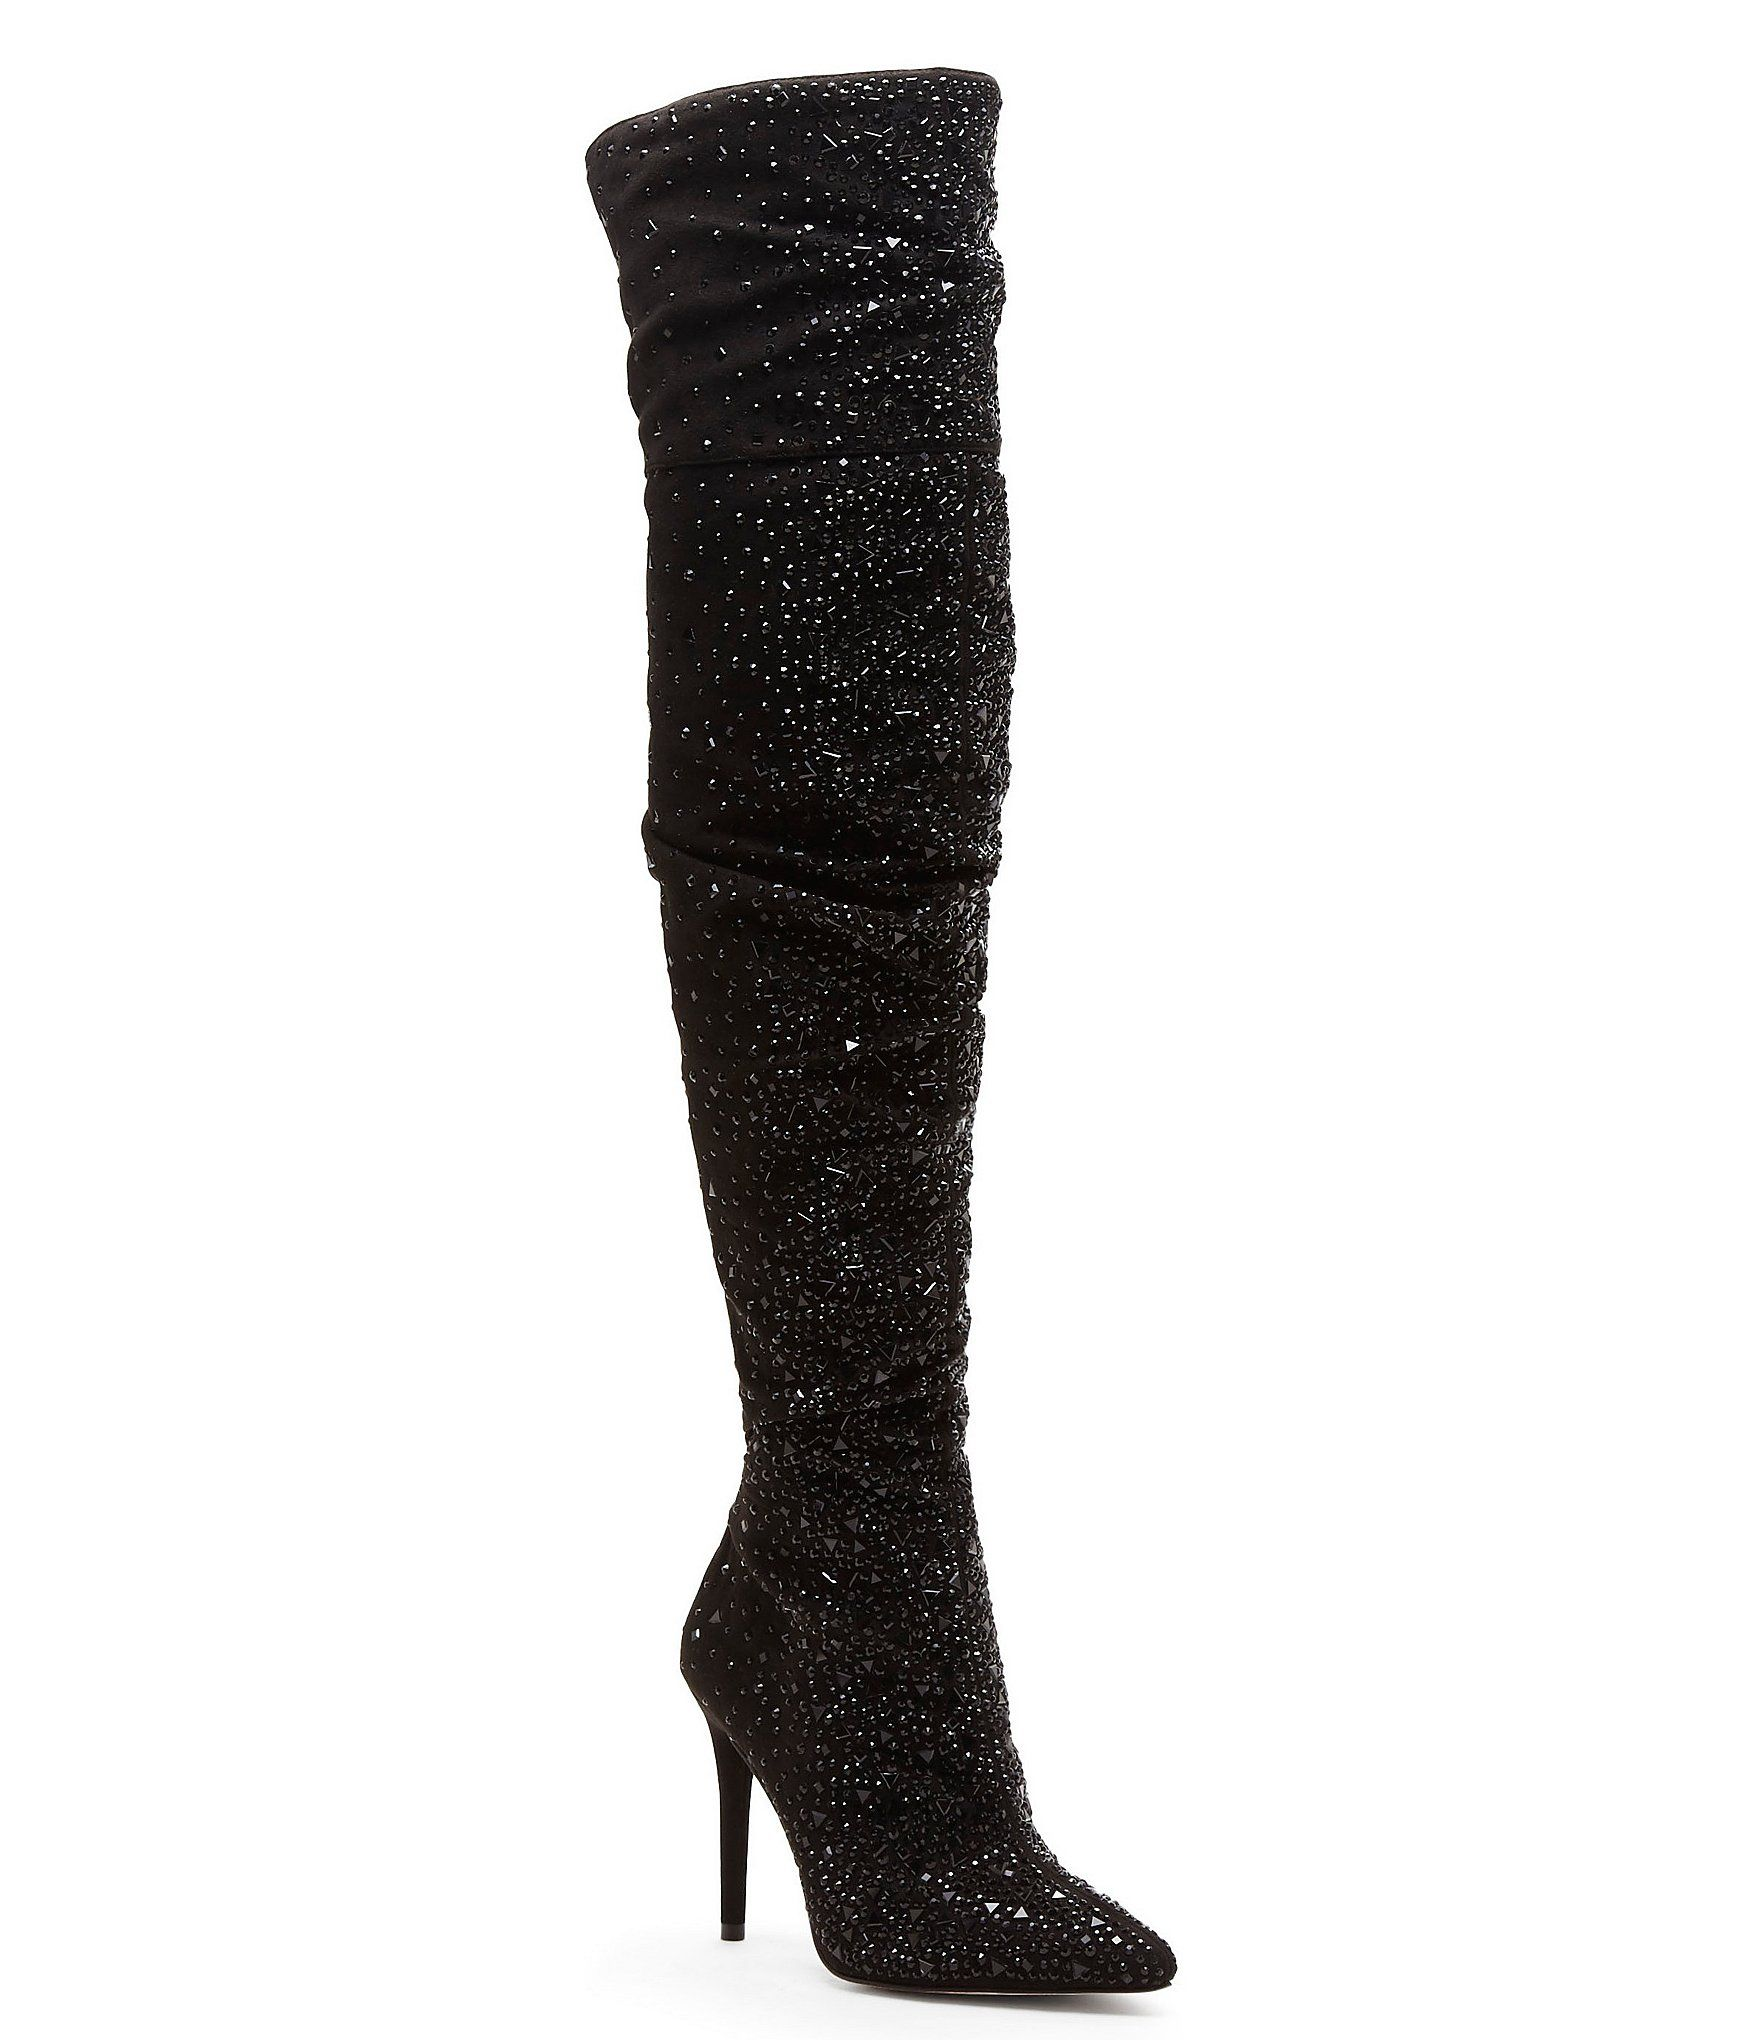 81887c5179 Shop for Jessica Simpson Luxella Hotfix Embellishment Over the Knee Boots  at Dillards.com. Visit Dillards.com to find clothing